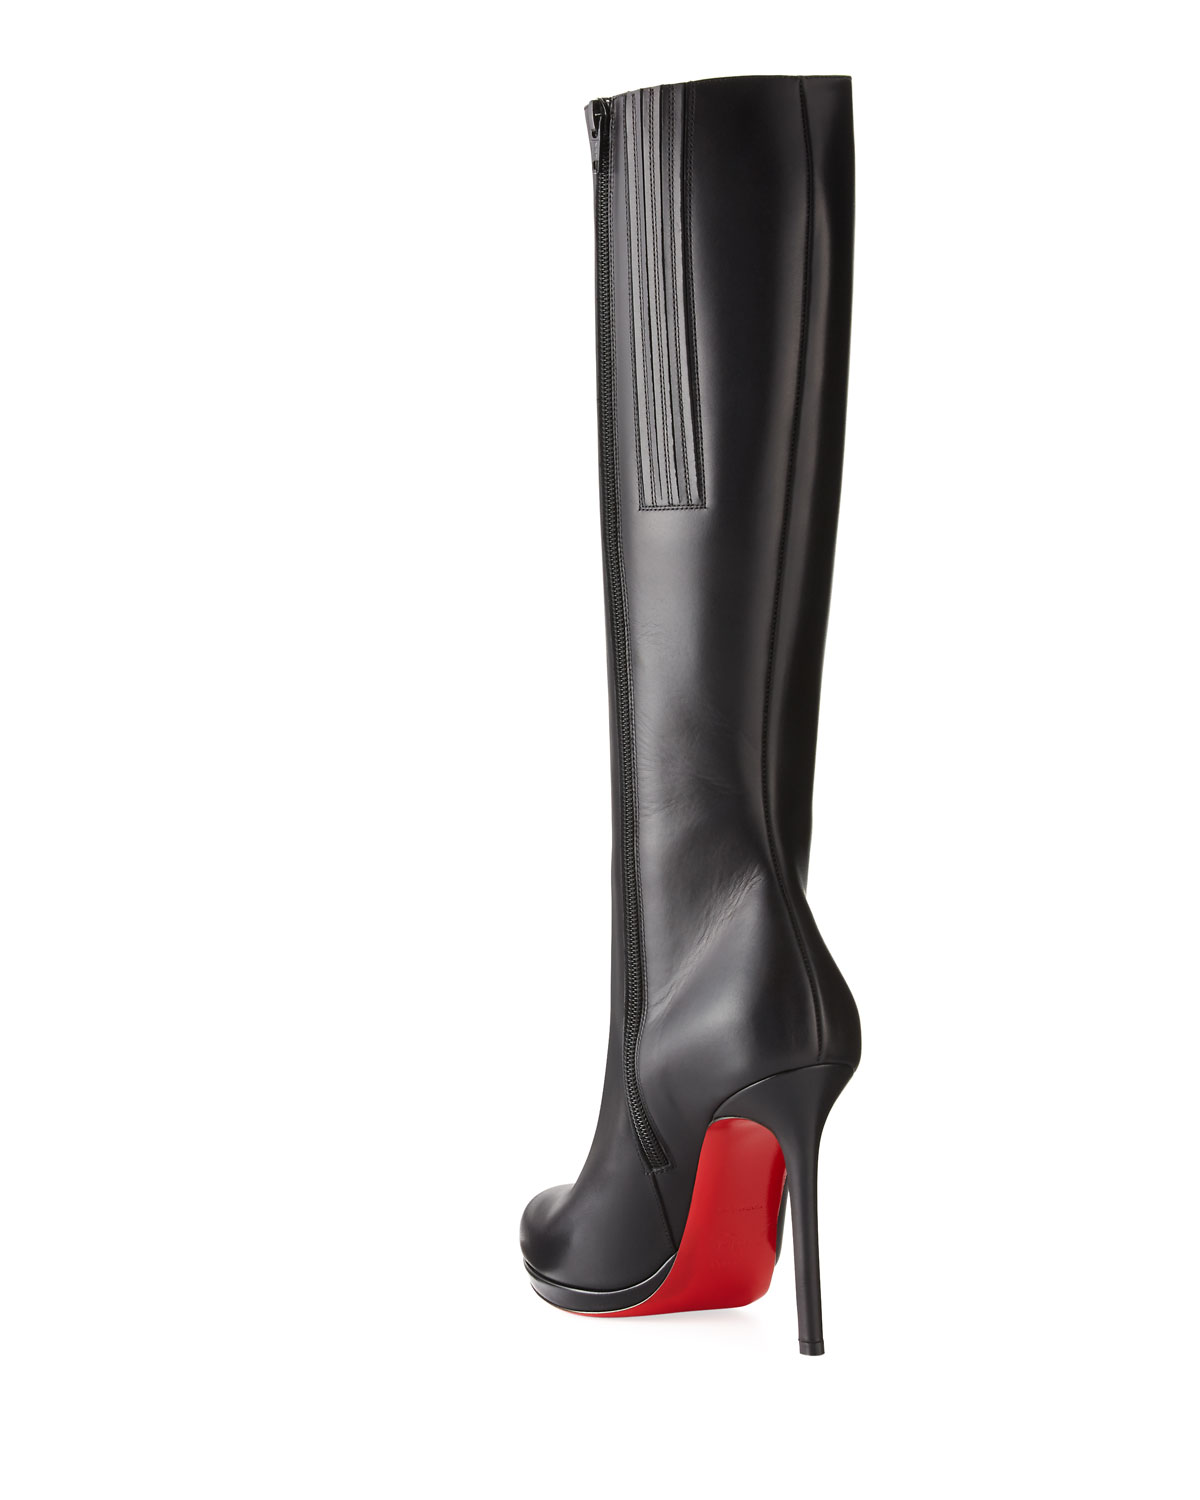 info for a63f1 49816 Botalili Tall Red Sole Boot